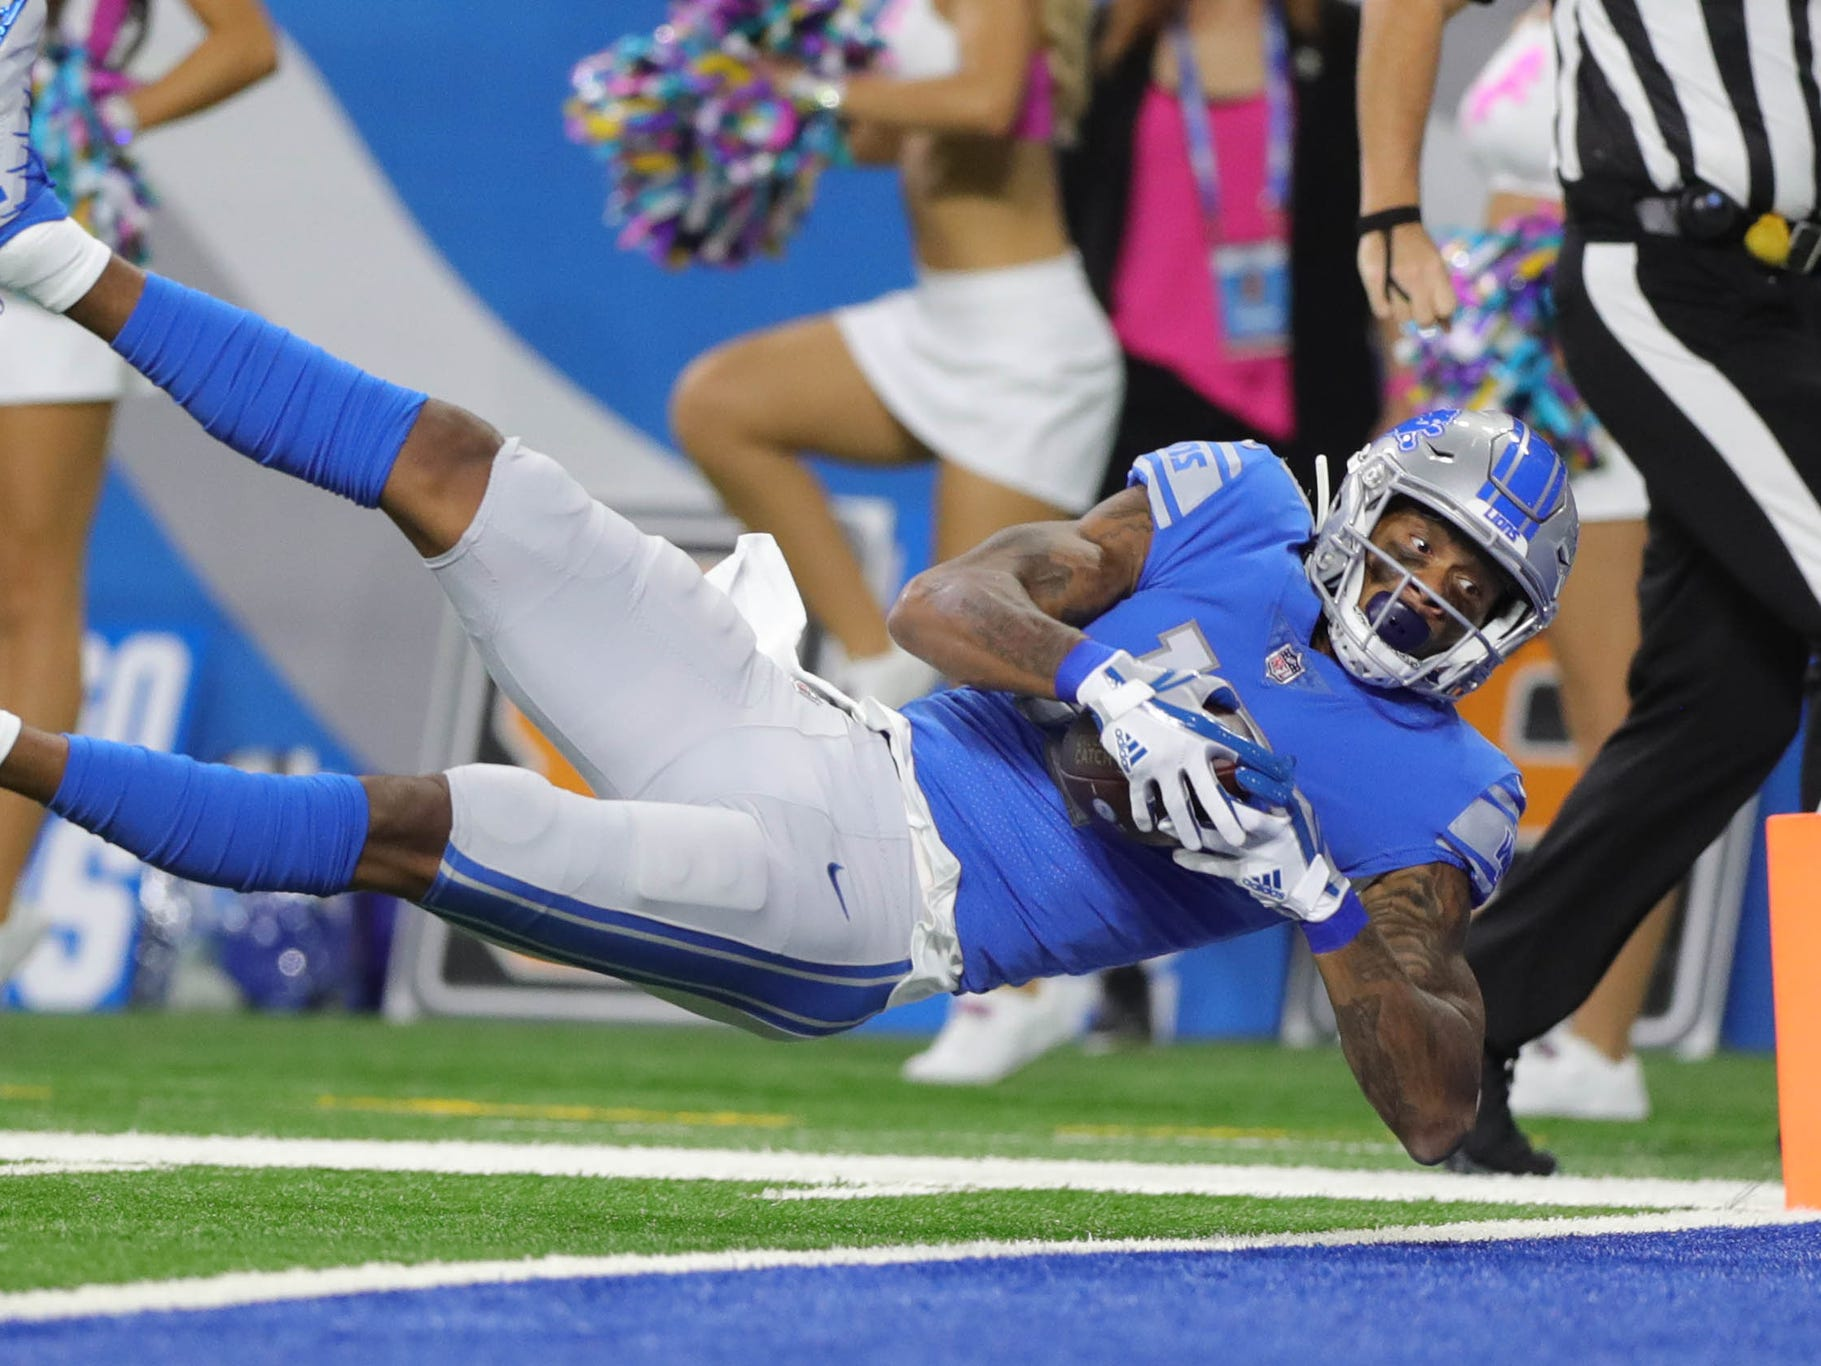 Lions wide receiver Kenny Golladay makes a catch that was called back during the first half of the Lions' 31-23 win on Sunday, Oct. 7, 2018, at Ford Field.